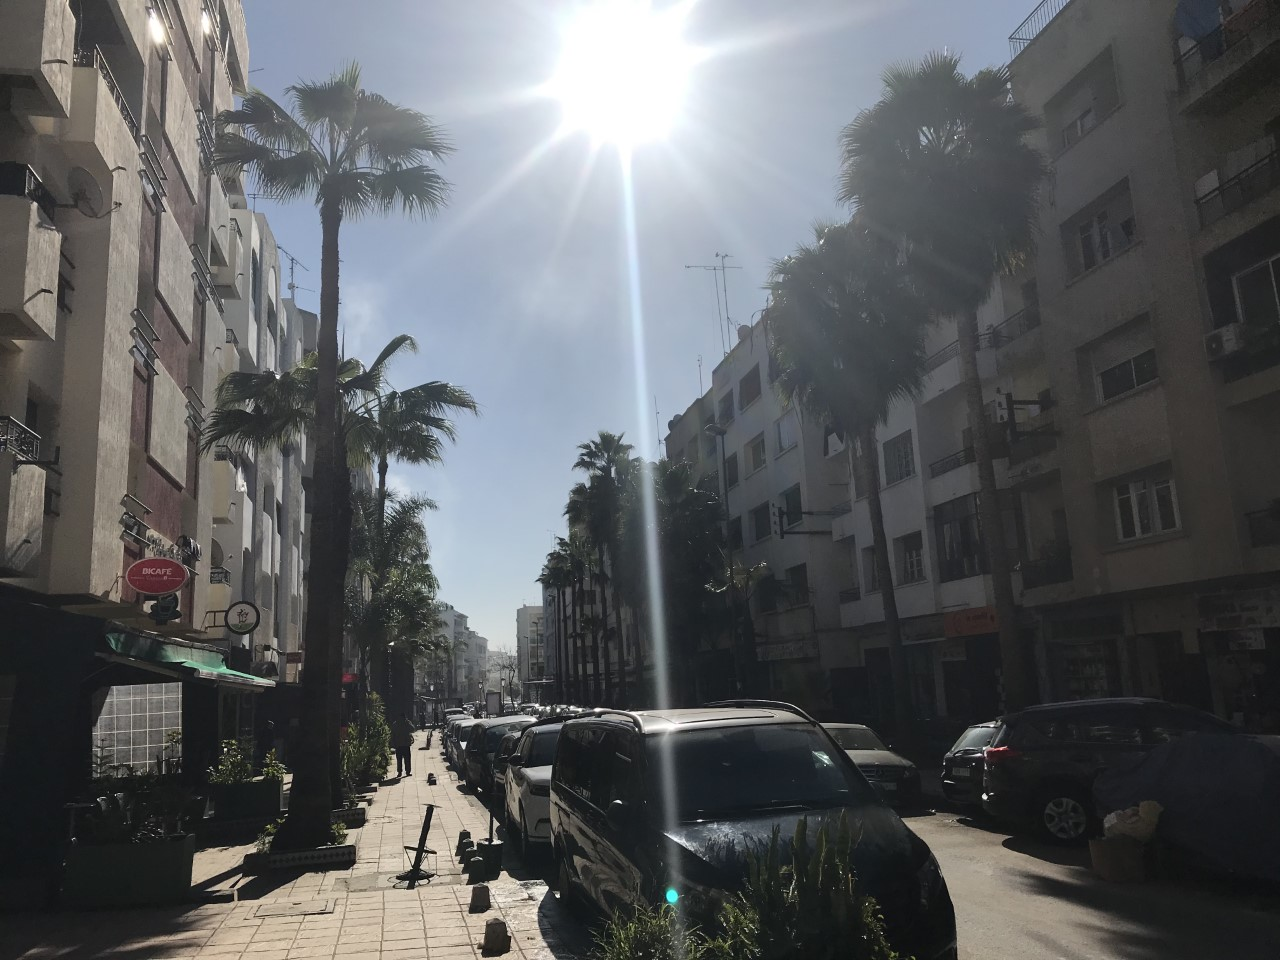 The sun illuminates a busy street in central Rabat